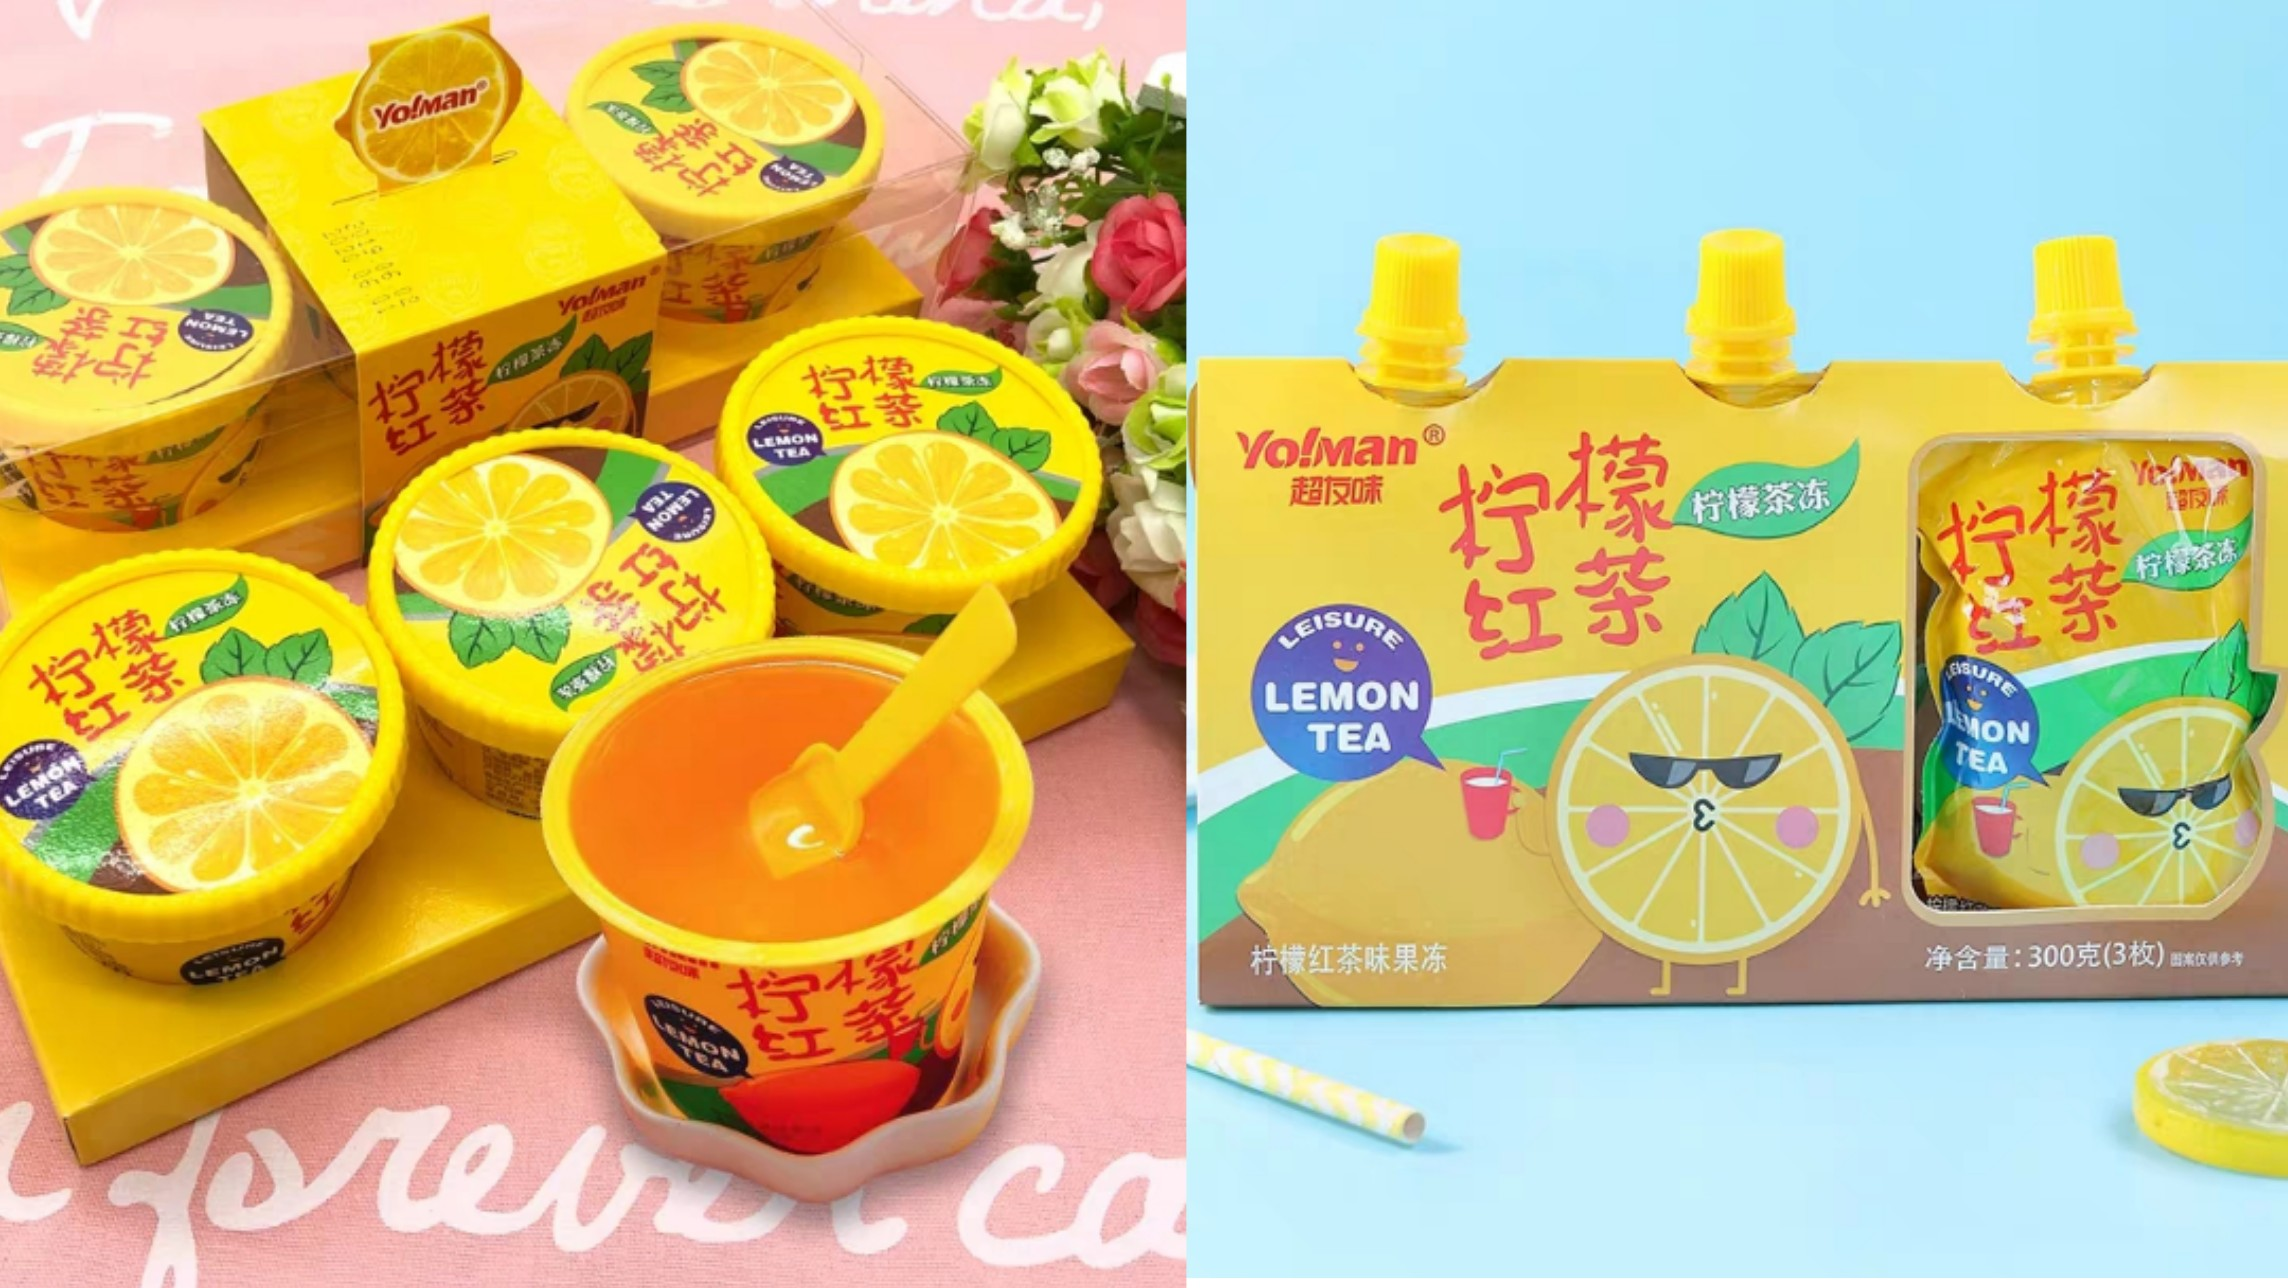 lemonjelly